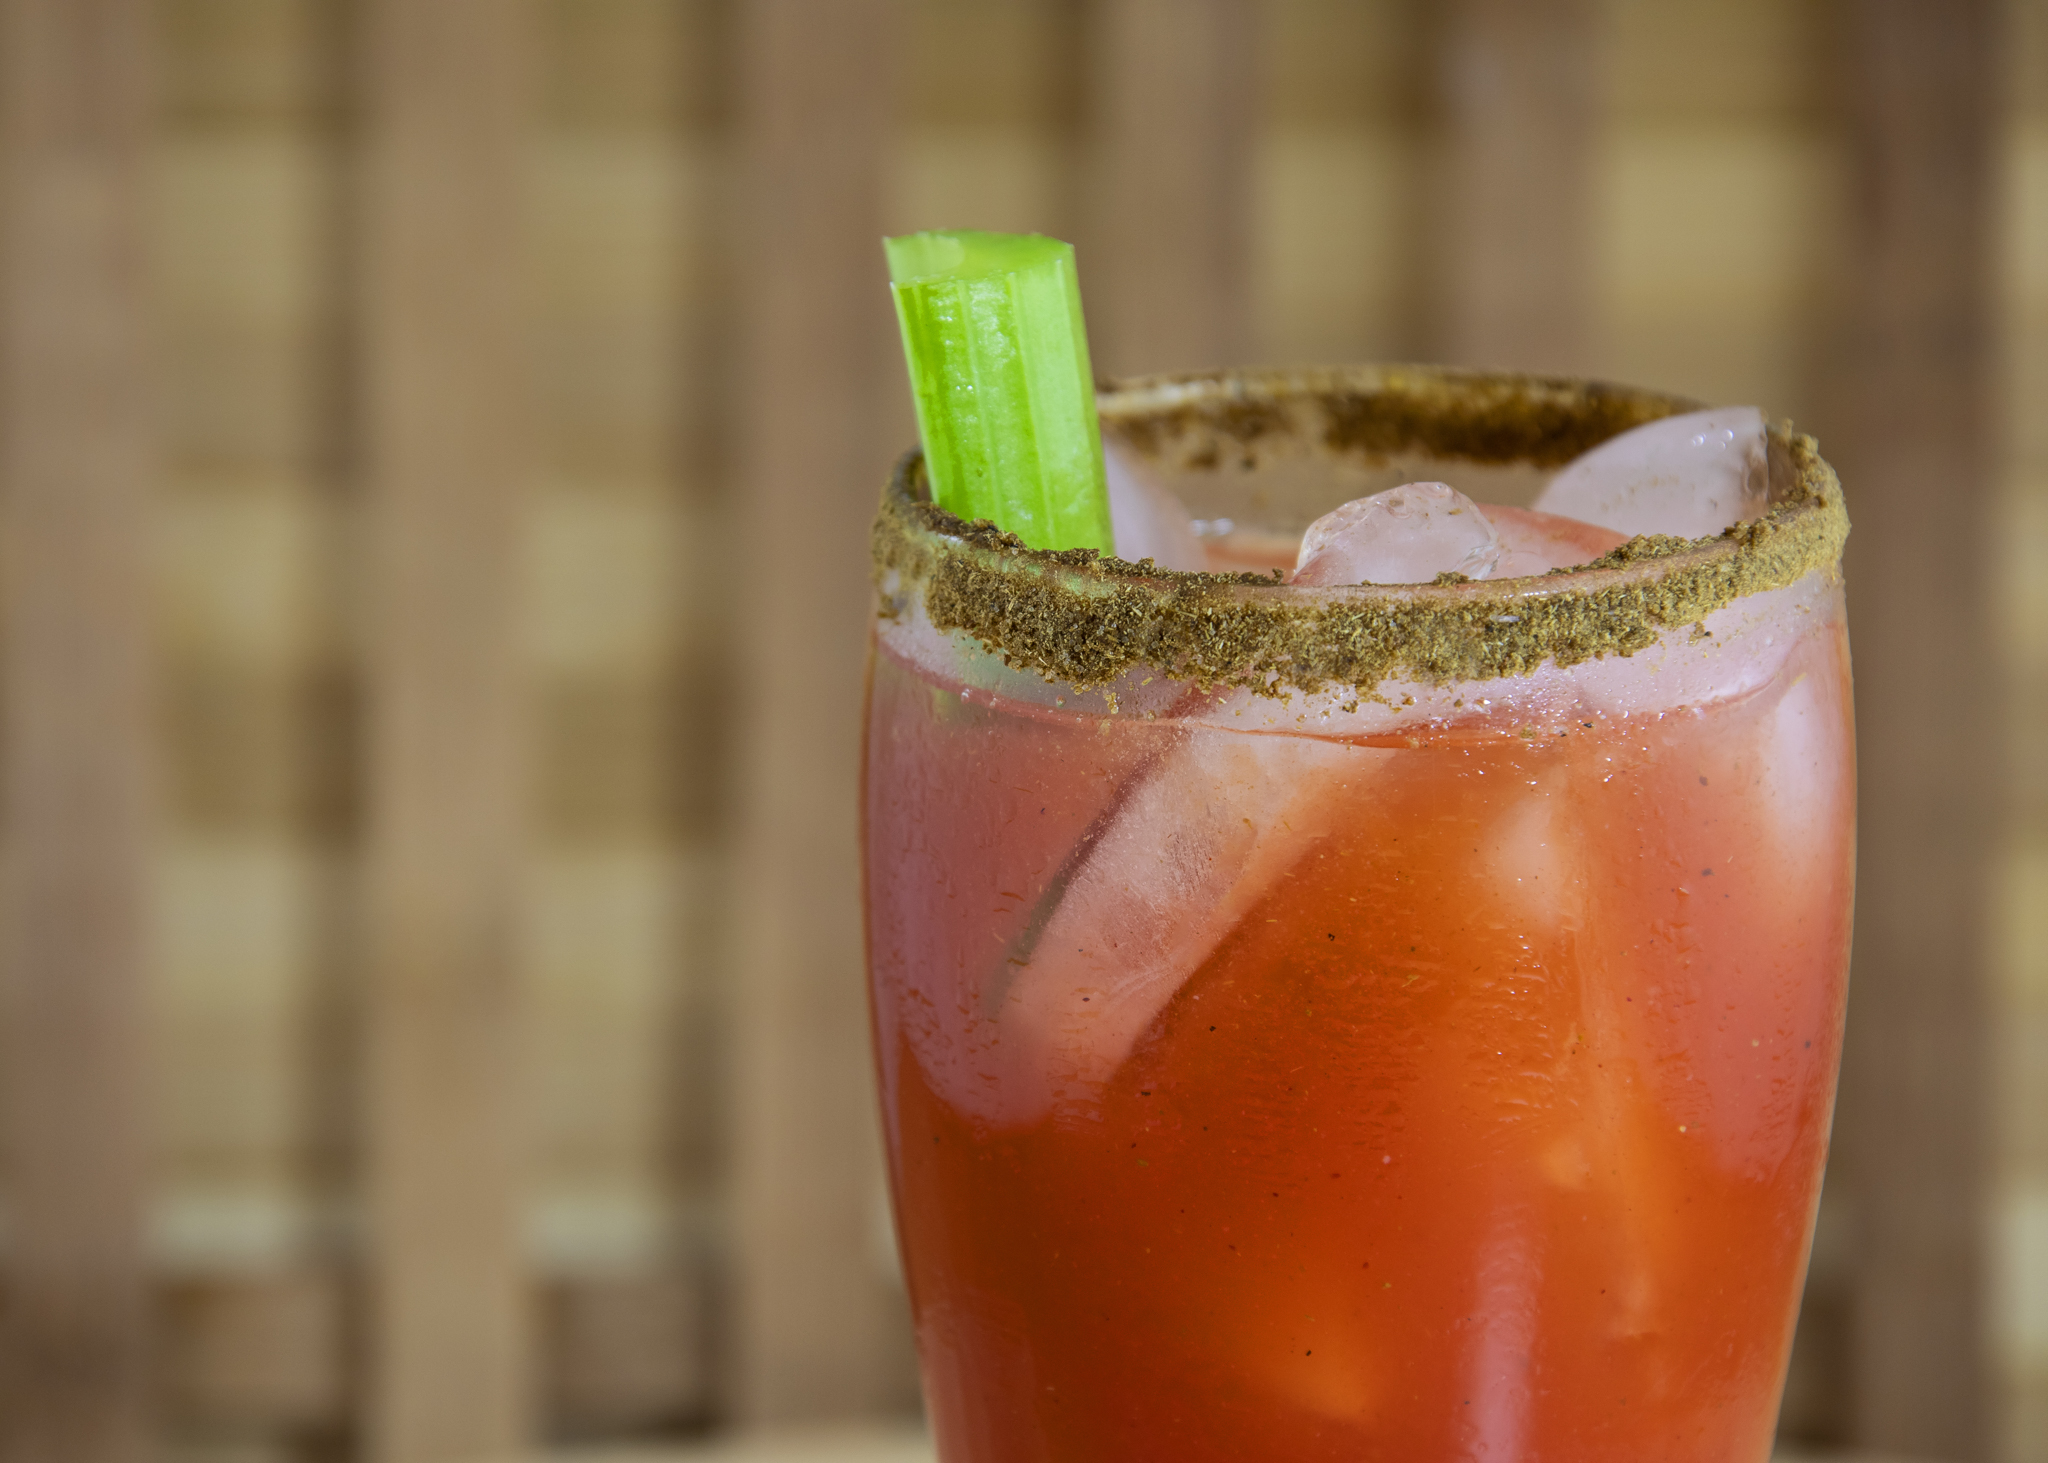 Half glass of a Canadian caesar cocktail